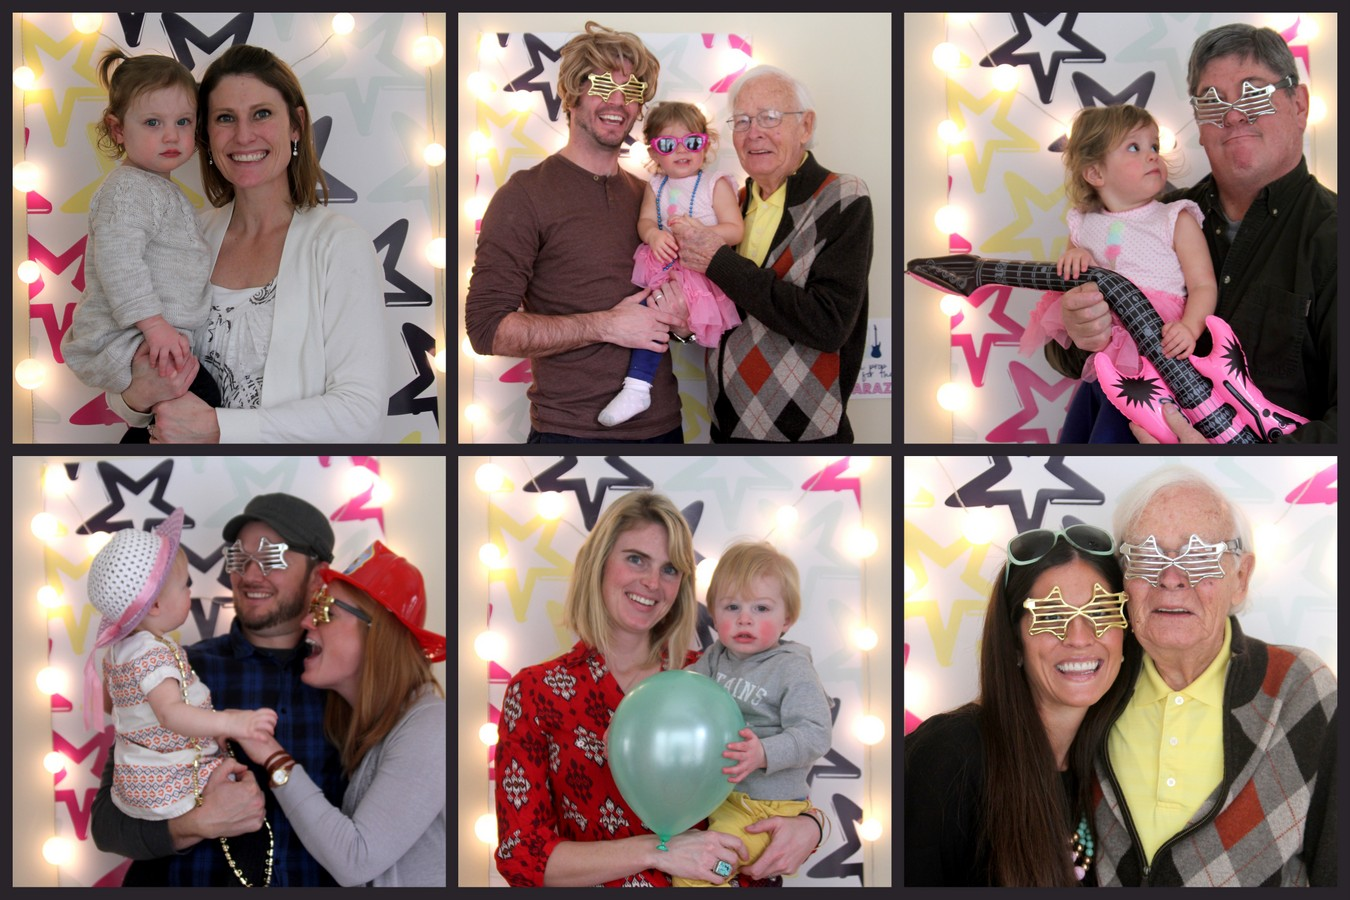 Time to party like a rock star! This sweet rock star birthday party includes all sorts of party ideas- like this cute 'paparazzi' photo booth!